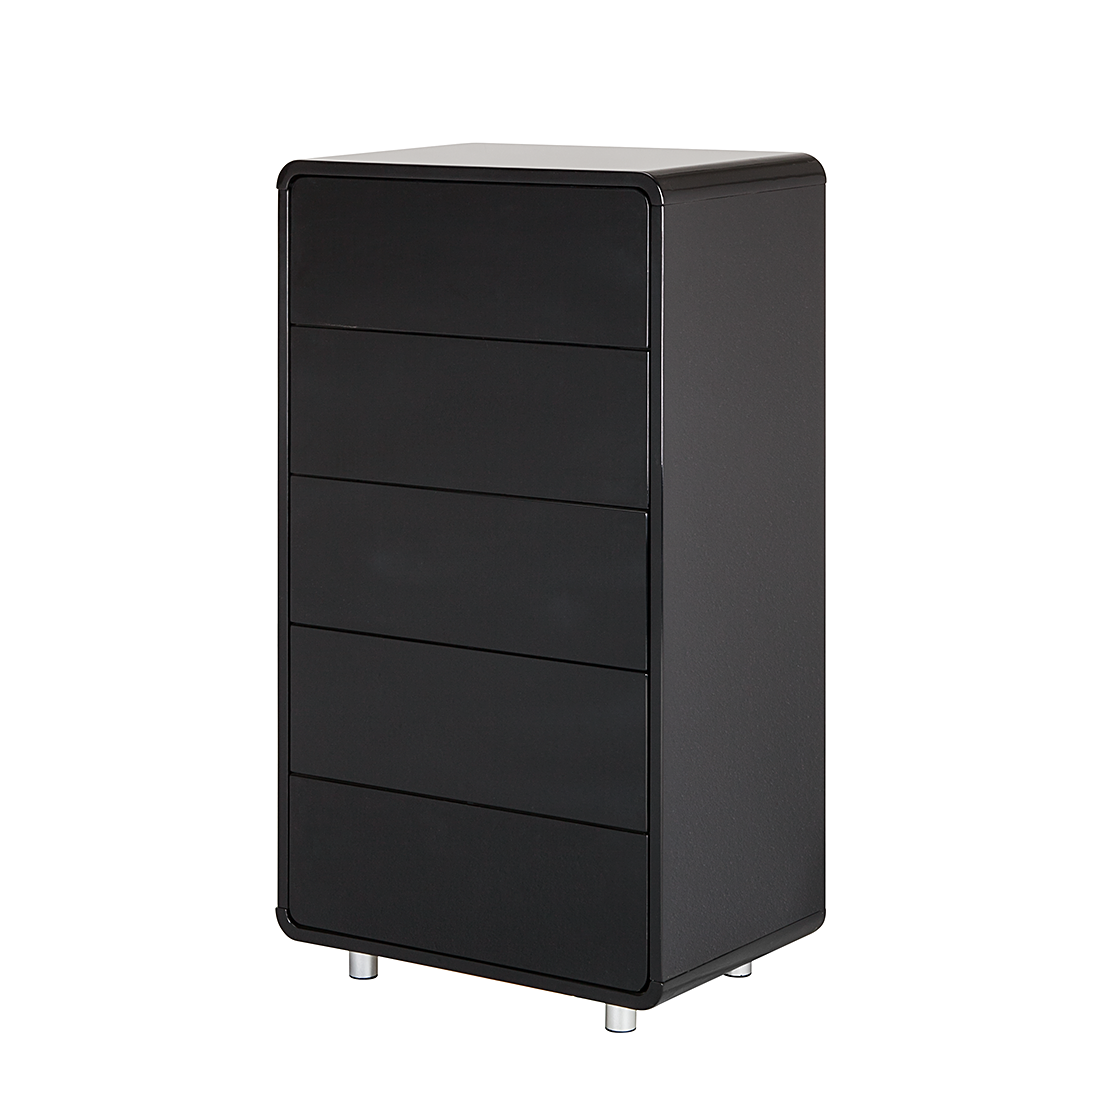 kommode 5 schubladen mdf schwarz hochglanz retro anrichte highboard schrank neu ebay. Black Bedroom Furniture Sets. Home Design Ideas